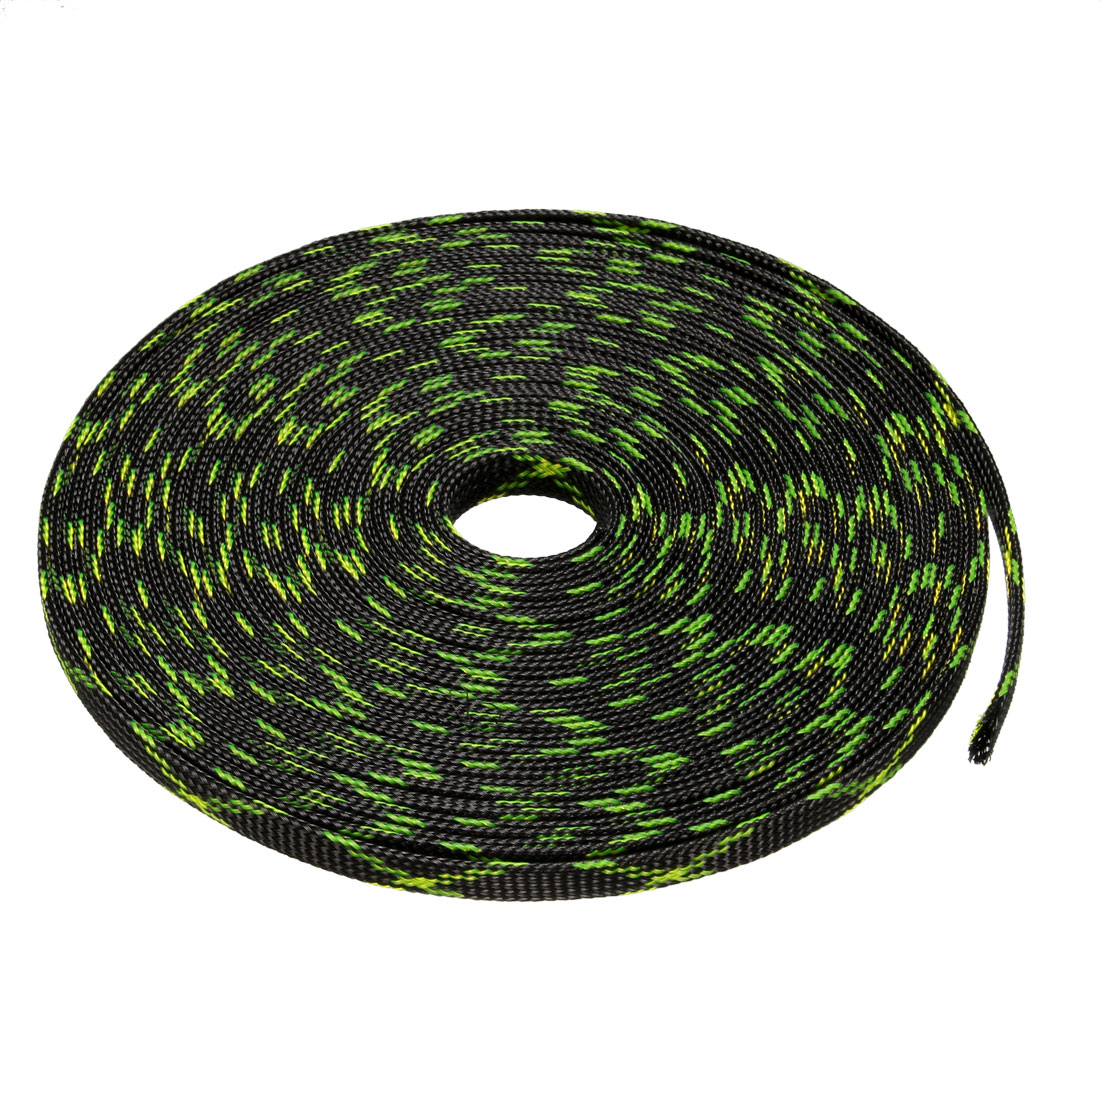 10mm PET Cable Wire Wrap Expandable Braided Sleeving Black Fluorescent Green 10M Length